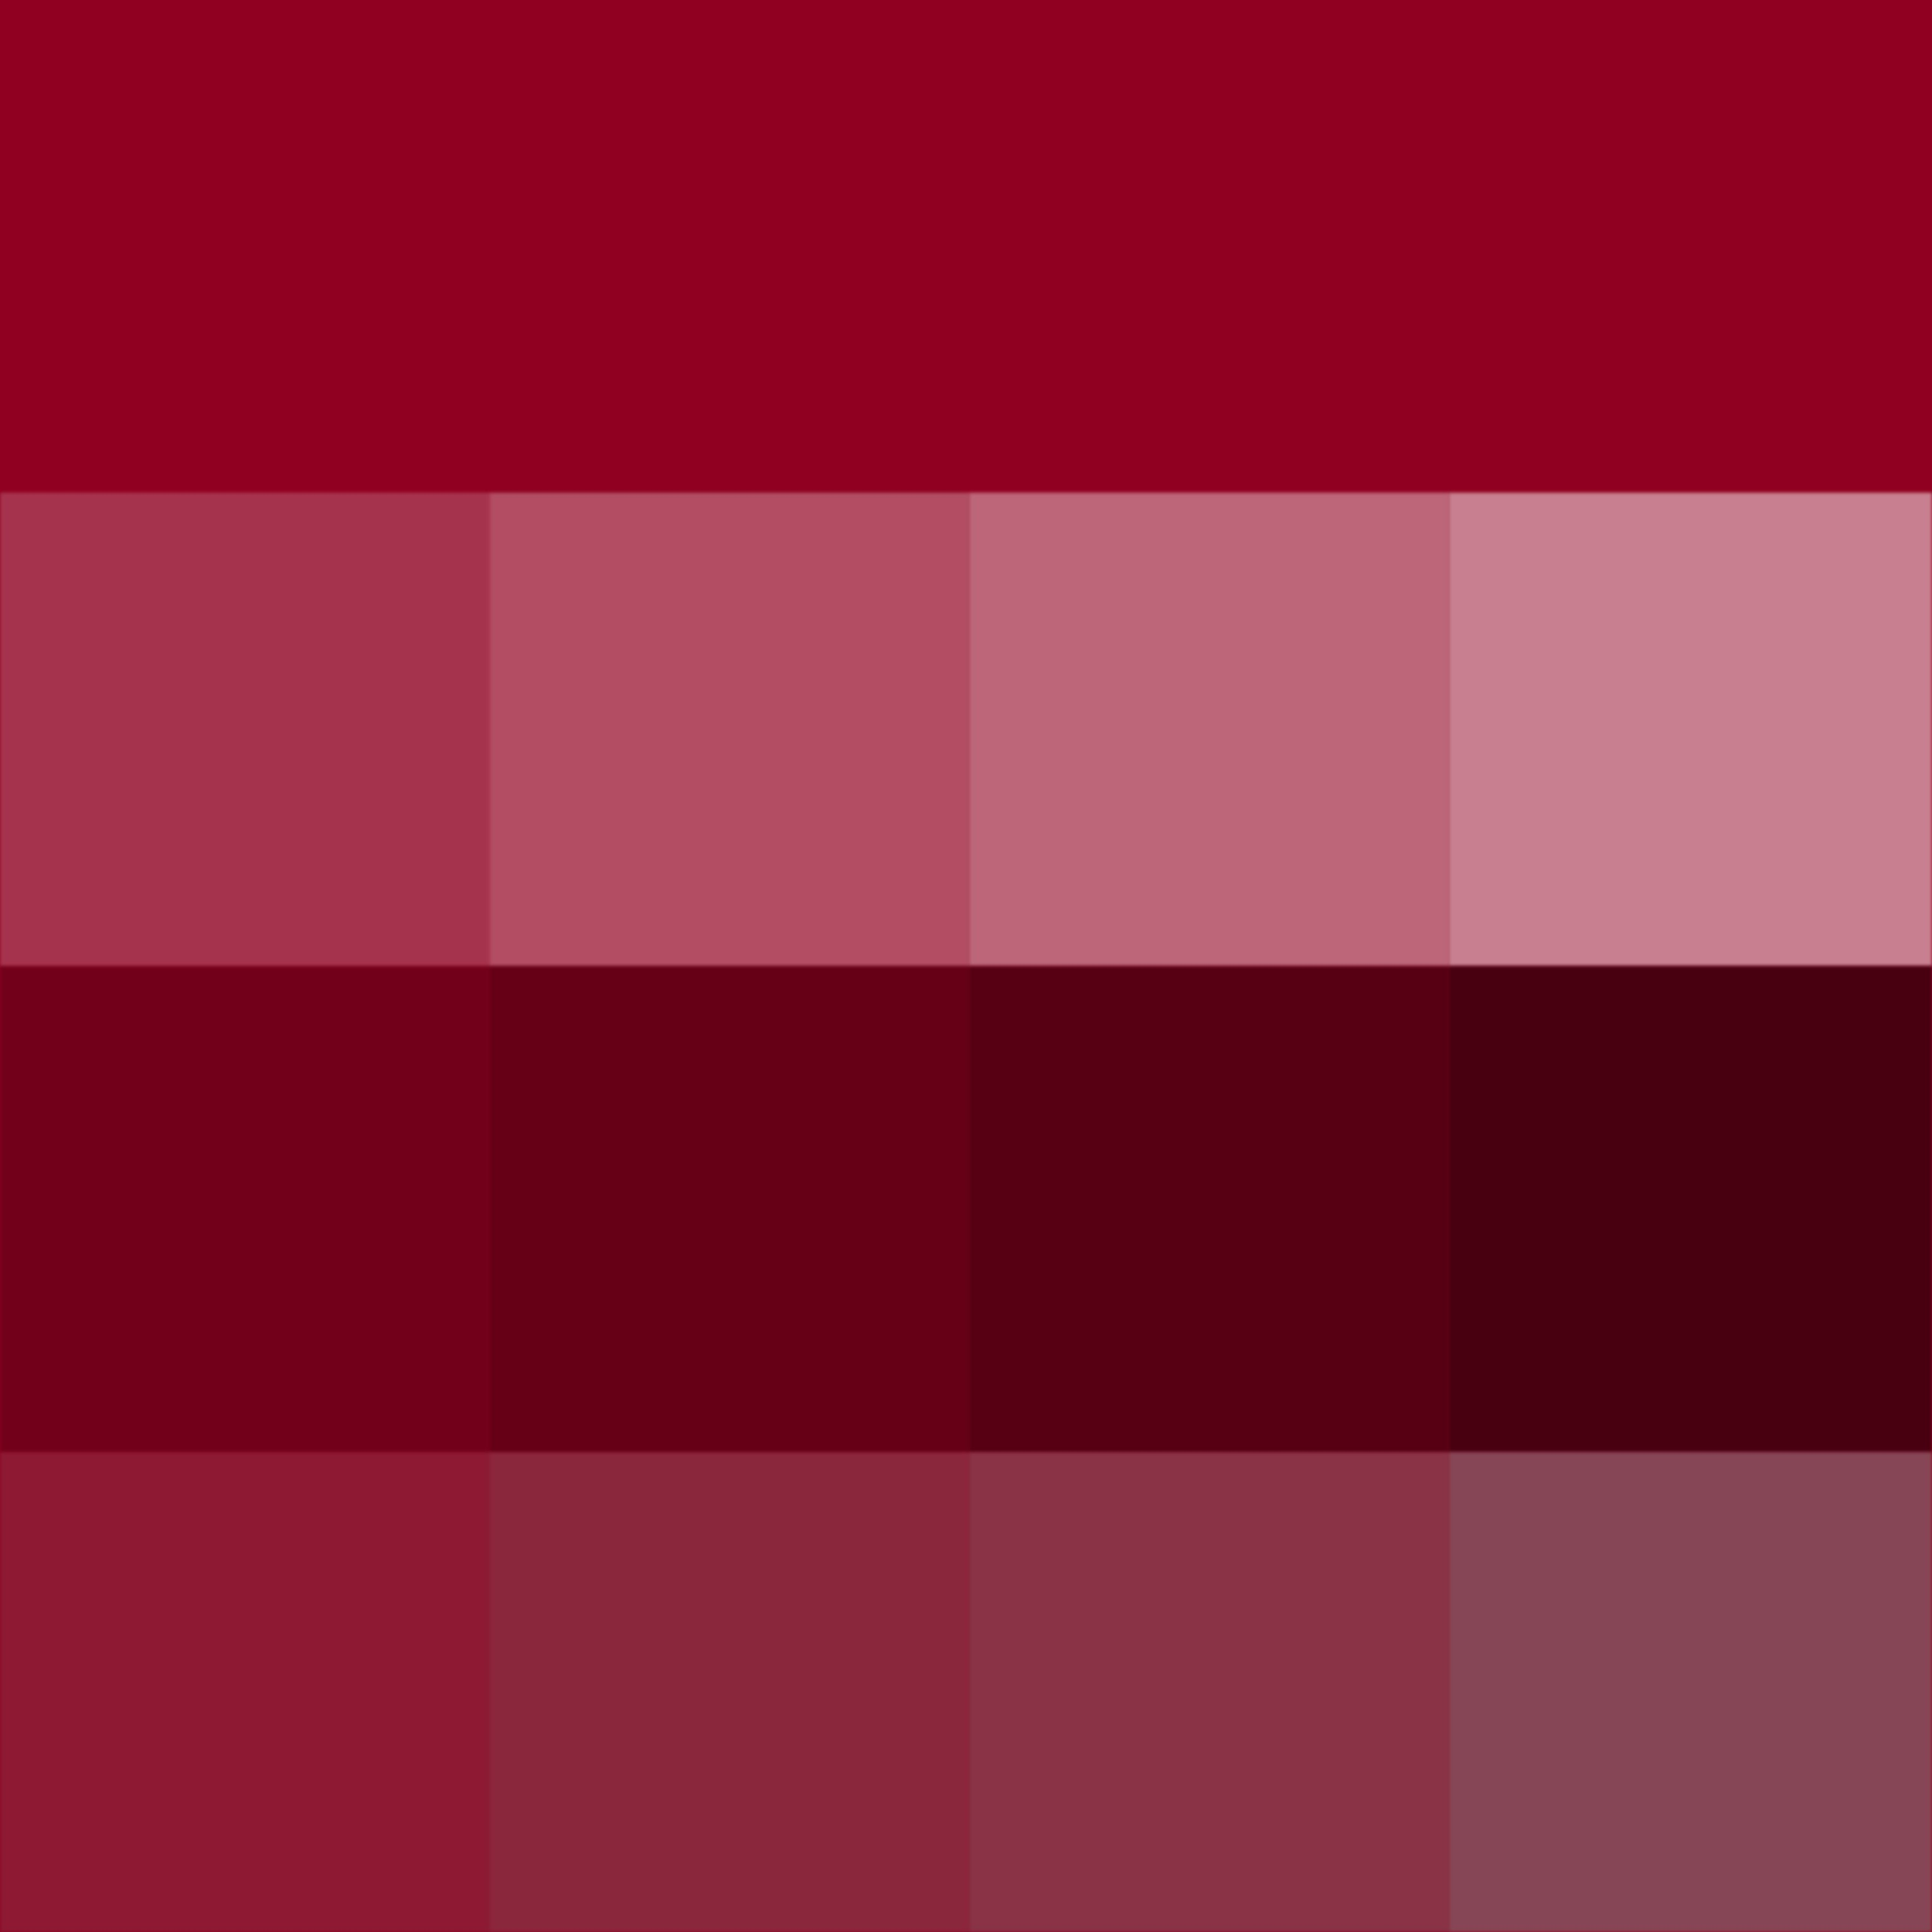 Burgundy wikipedia hue tints shades tones hue pure color burgundy wikipedia hue tints shades tones hue pure color with tints hue white shades hue black and tones hue grey which desaturates geenschuldenfo Images